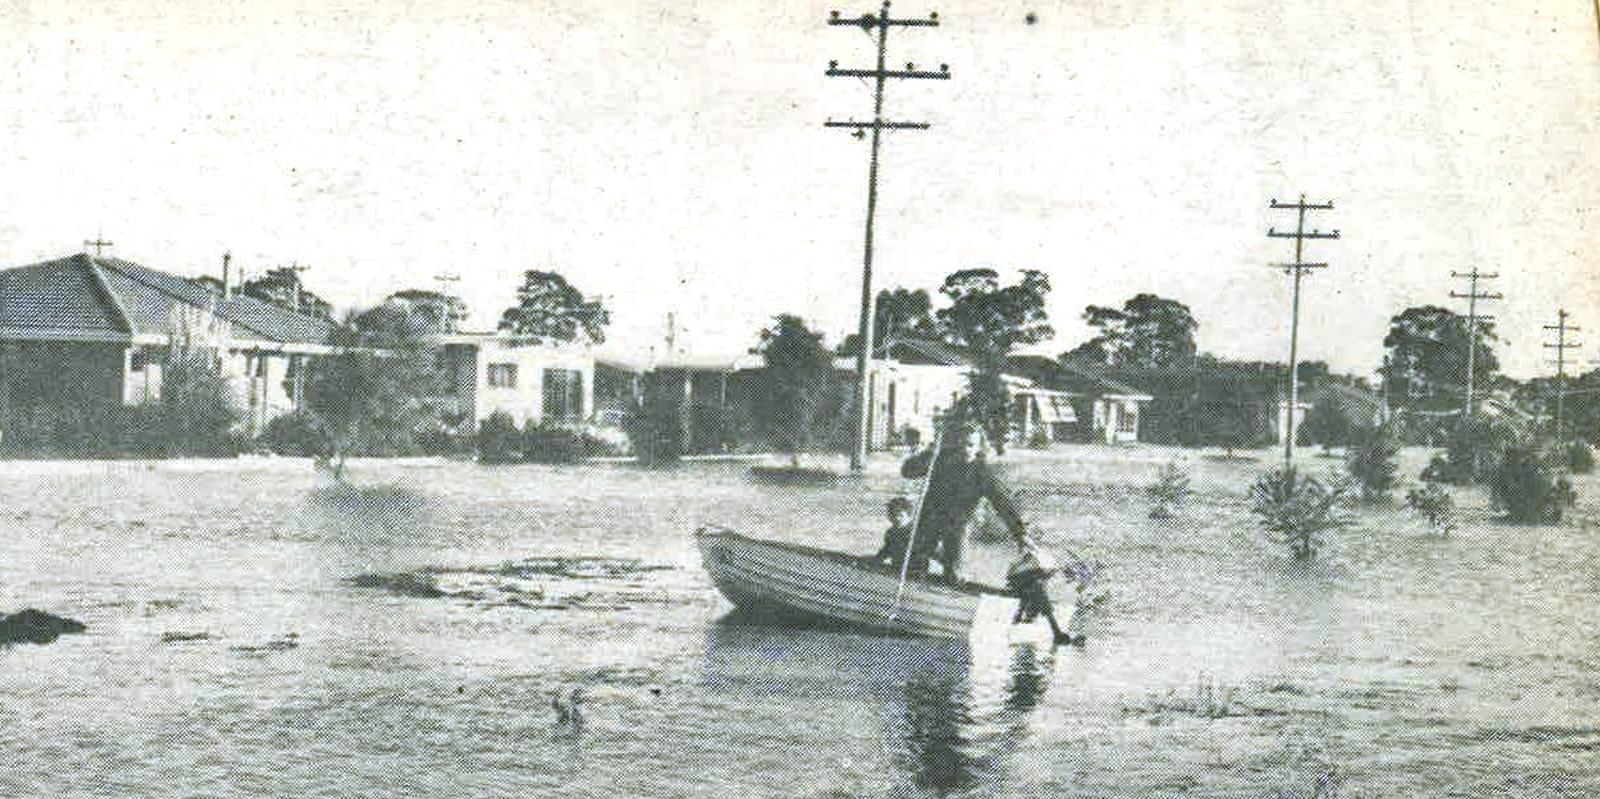 GALLERY: The 1974 Floods